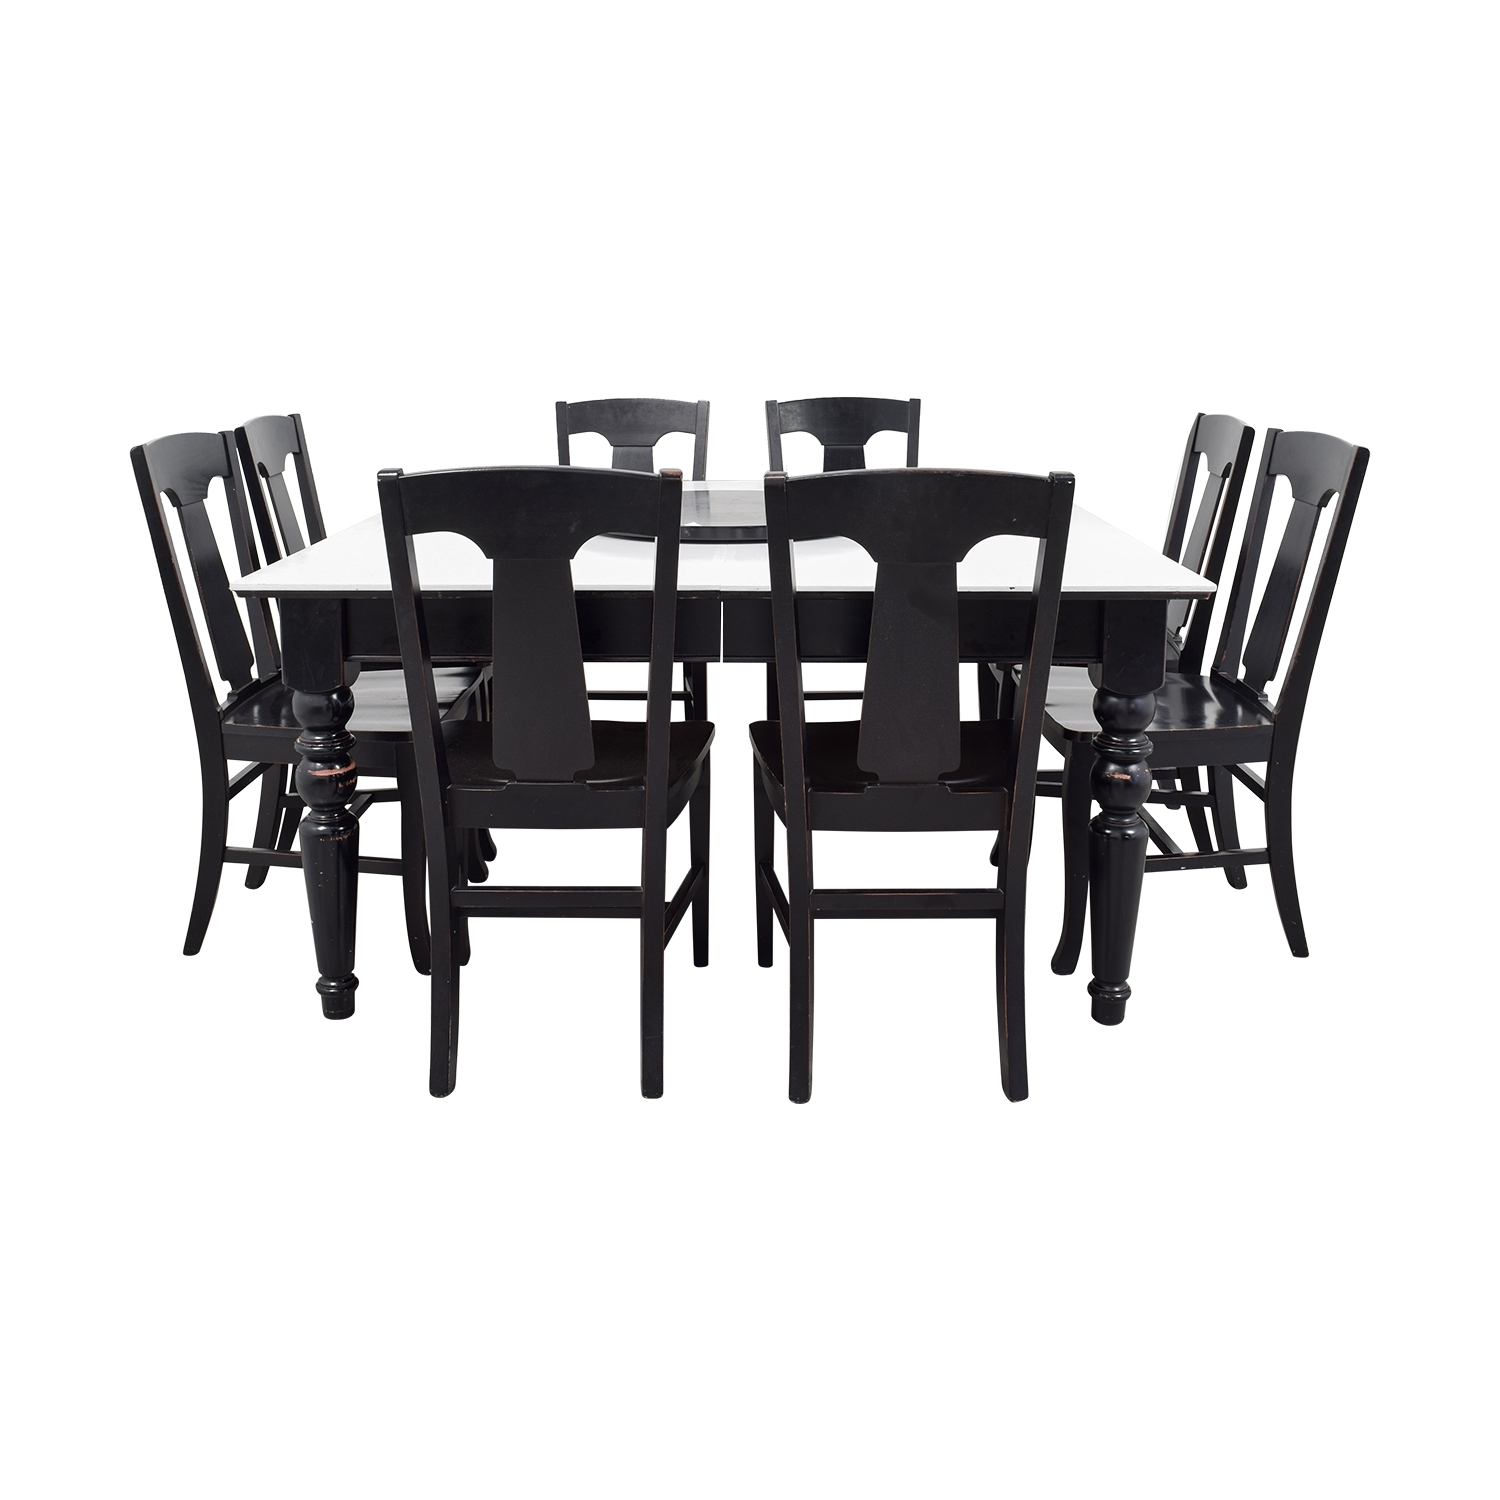 [%79% Off – Pottery Barn Pottery Barn White And Black Extendable Inside 2017 Black Extendable Dining Tables And Chairs|Black Extendable Dining Tables And Chairs With Trendy 79% Off – Pottery Barn Pottery Barn White And Black Extendable|Current Black Extendable Dining Tables And Chairs In 79% Off – Pottery Barn Pottery Barn White And Black Extendable|Recent 79% Off – Pottery Barn Pottery Barn White And Black Extendable Throughout Black Extendable Dining Tables And Chairs%] (View 20 of 25)